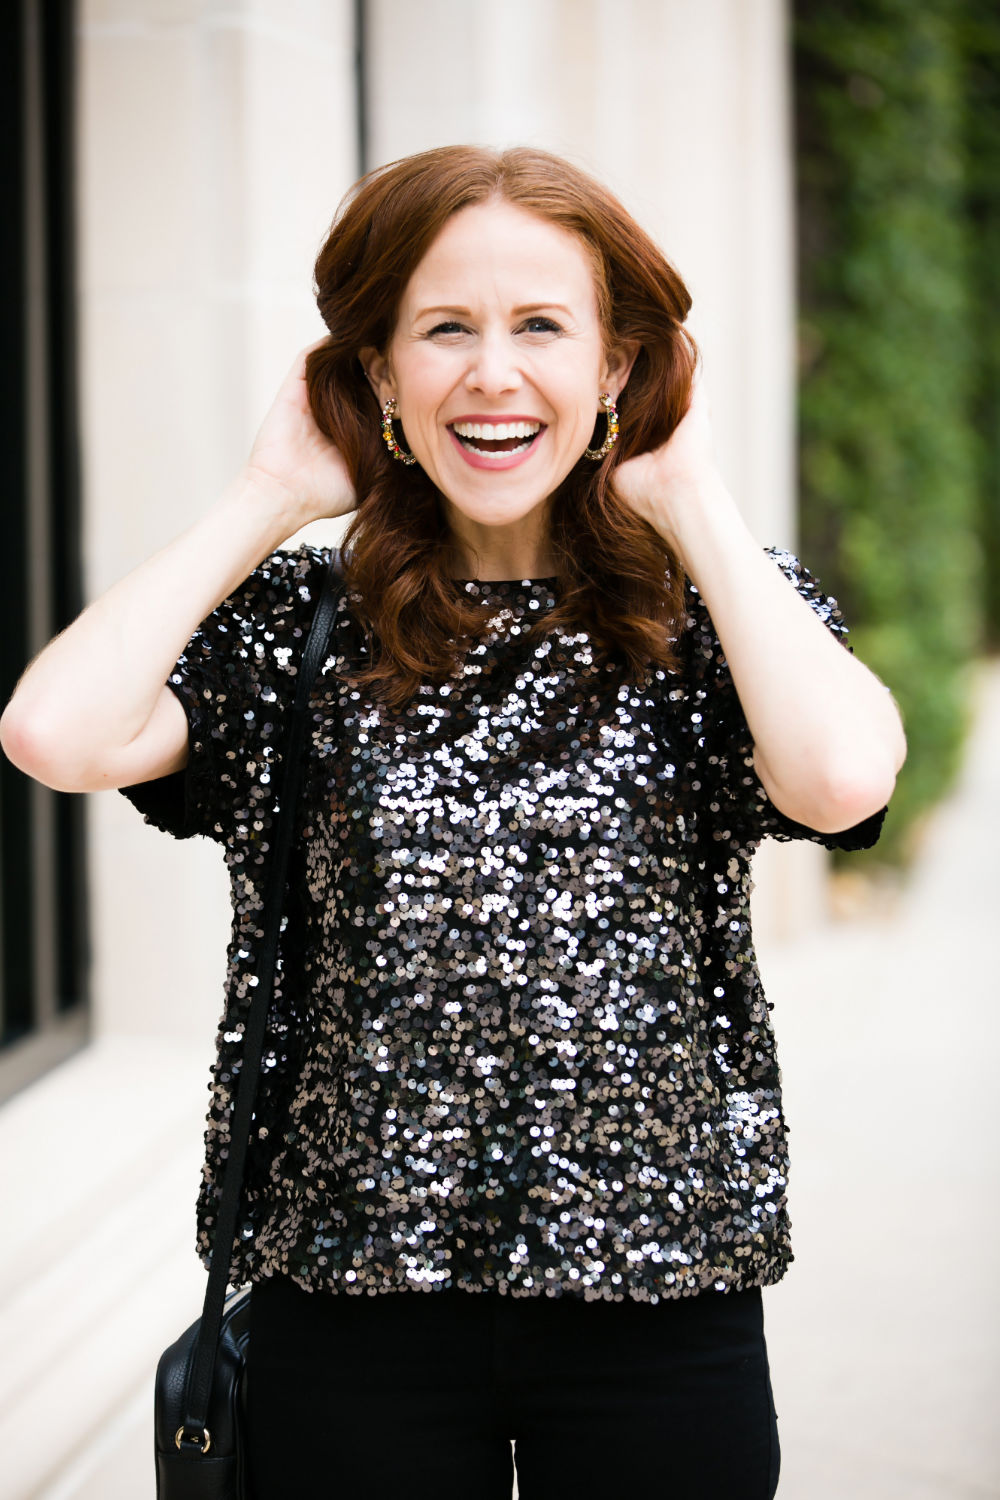 #holidaystyle #redhead #outfitinspo  #sequins #realstyle | Chanel | What to Wear for NYE House Party featured by top Florida fashion blog The Modern Savvy